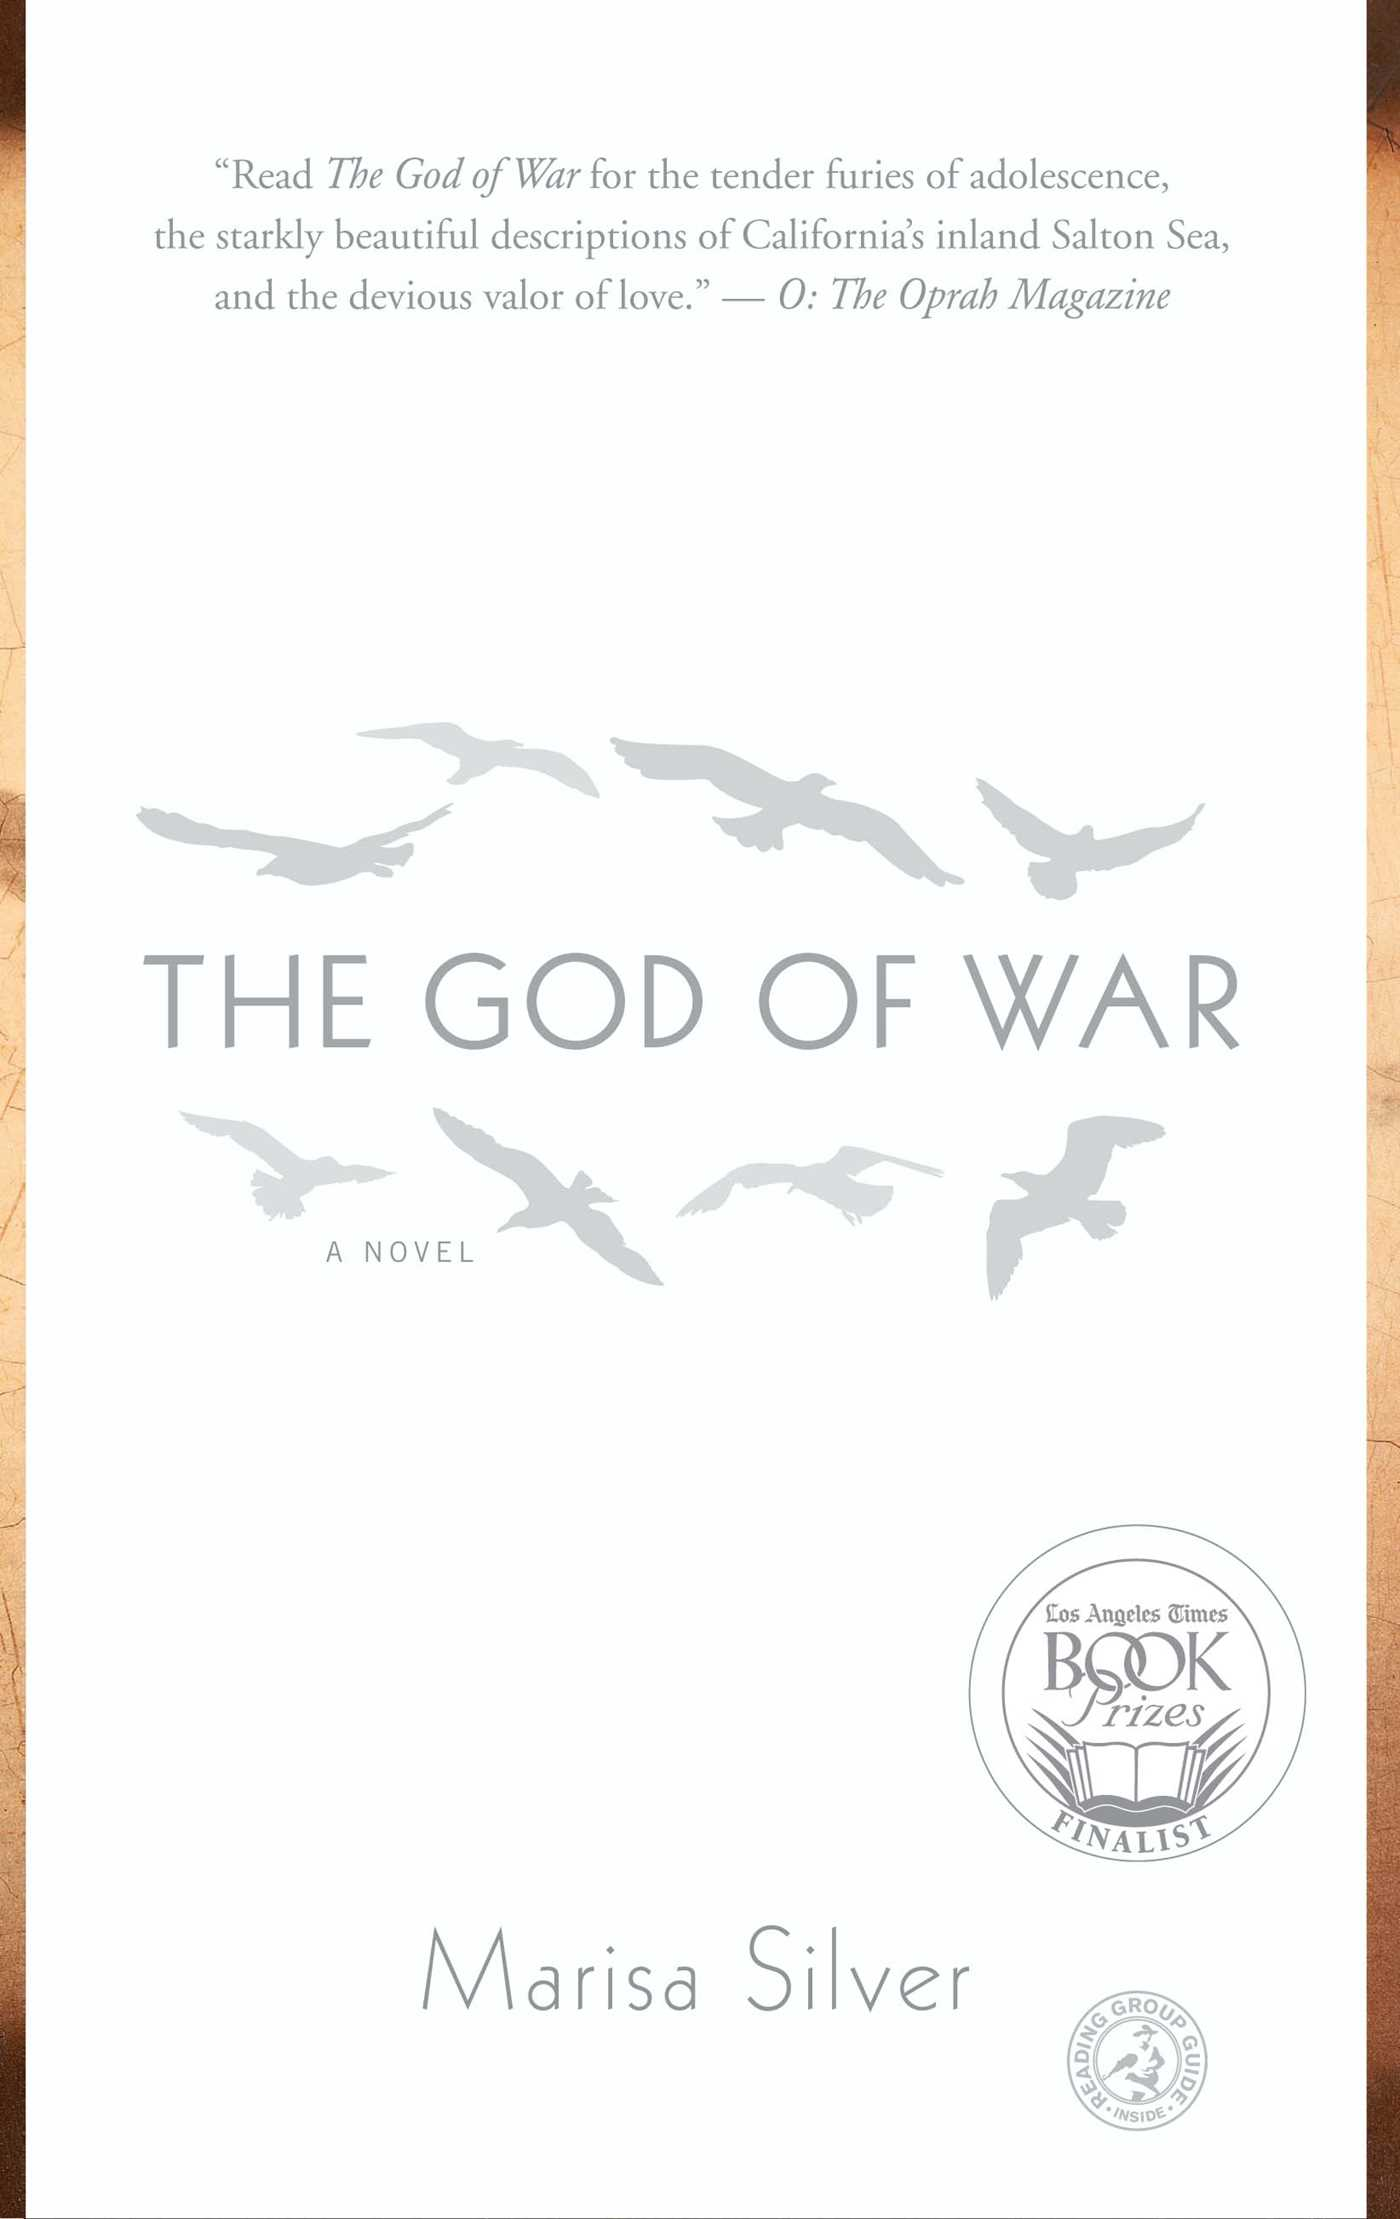 God-of-war-9781416563174_hr